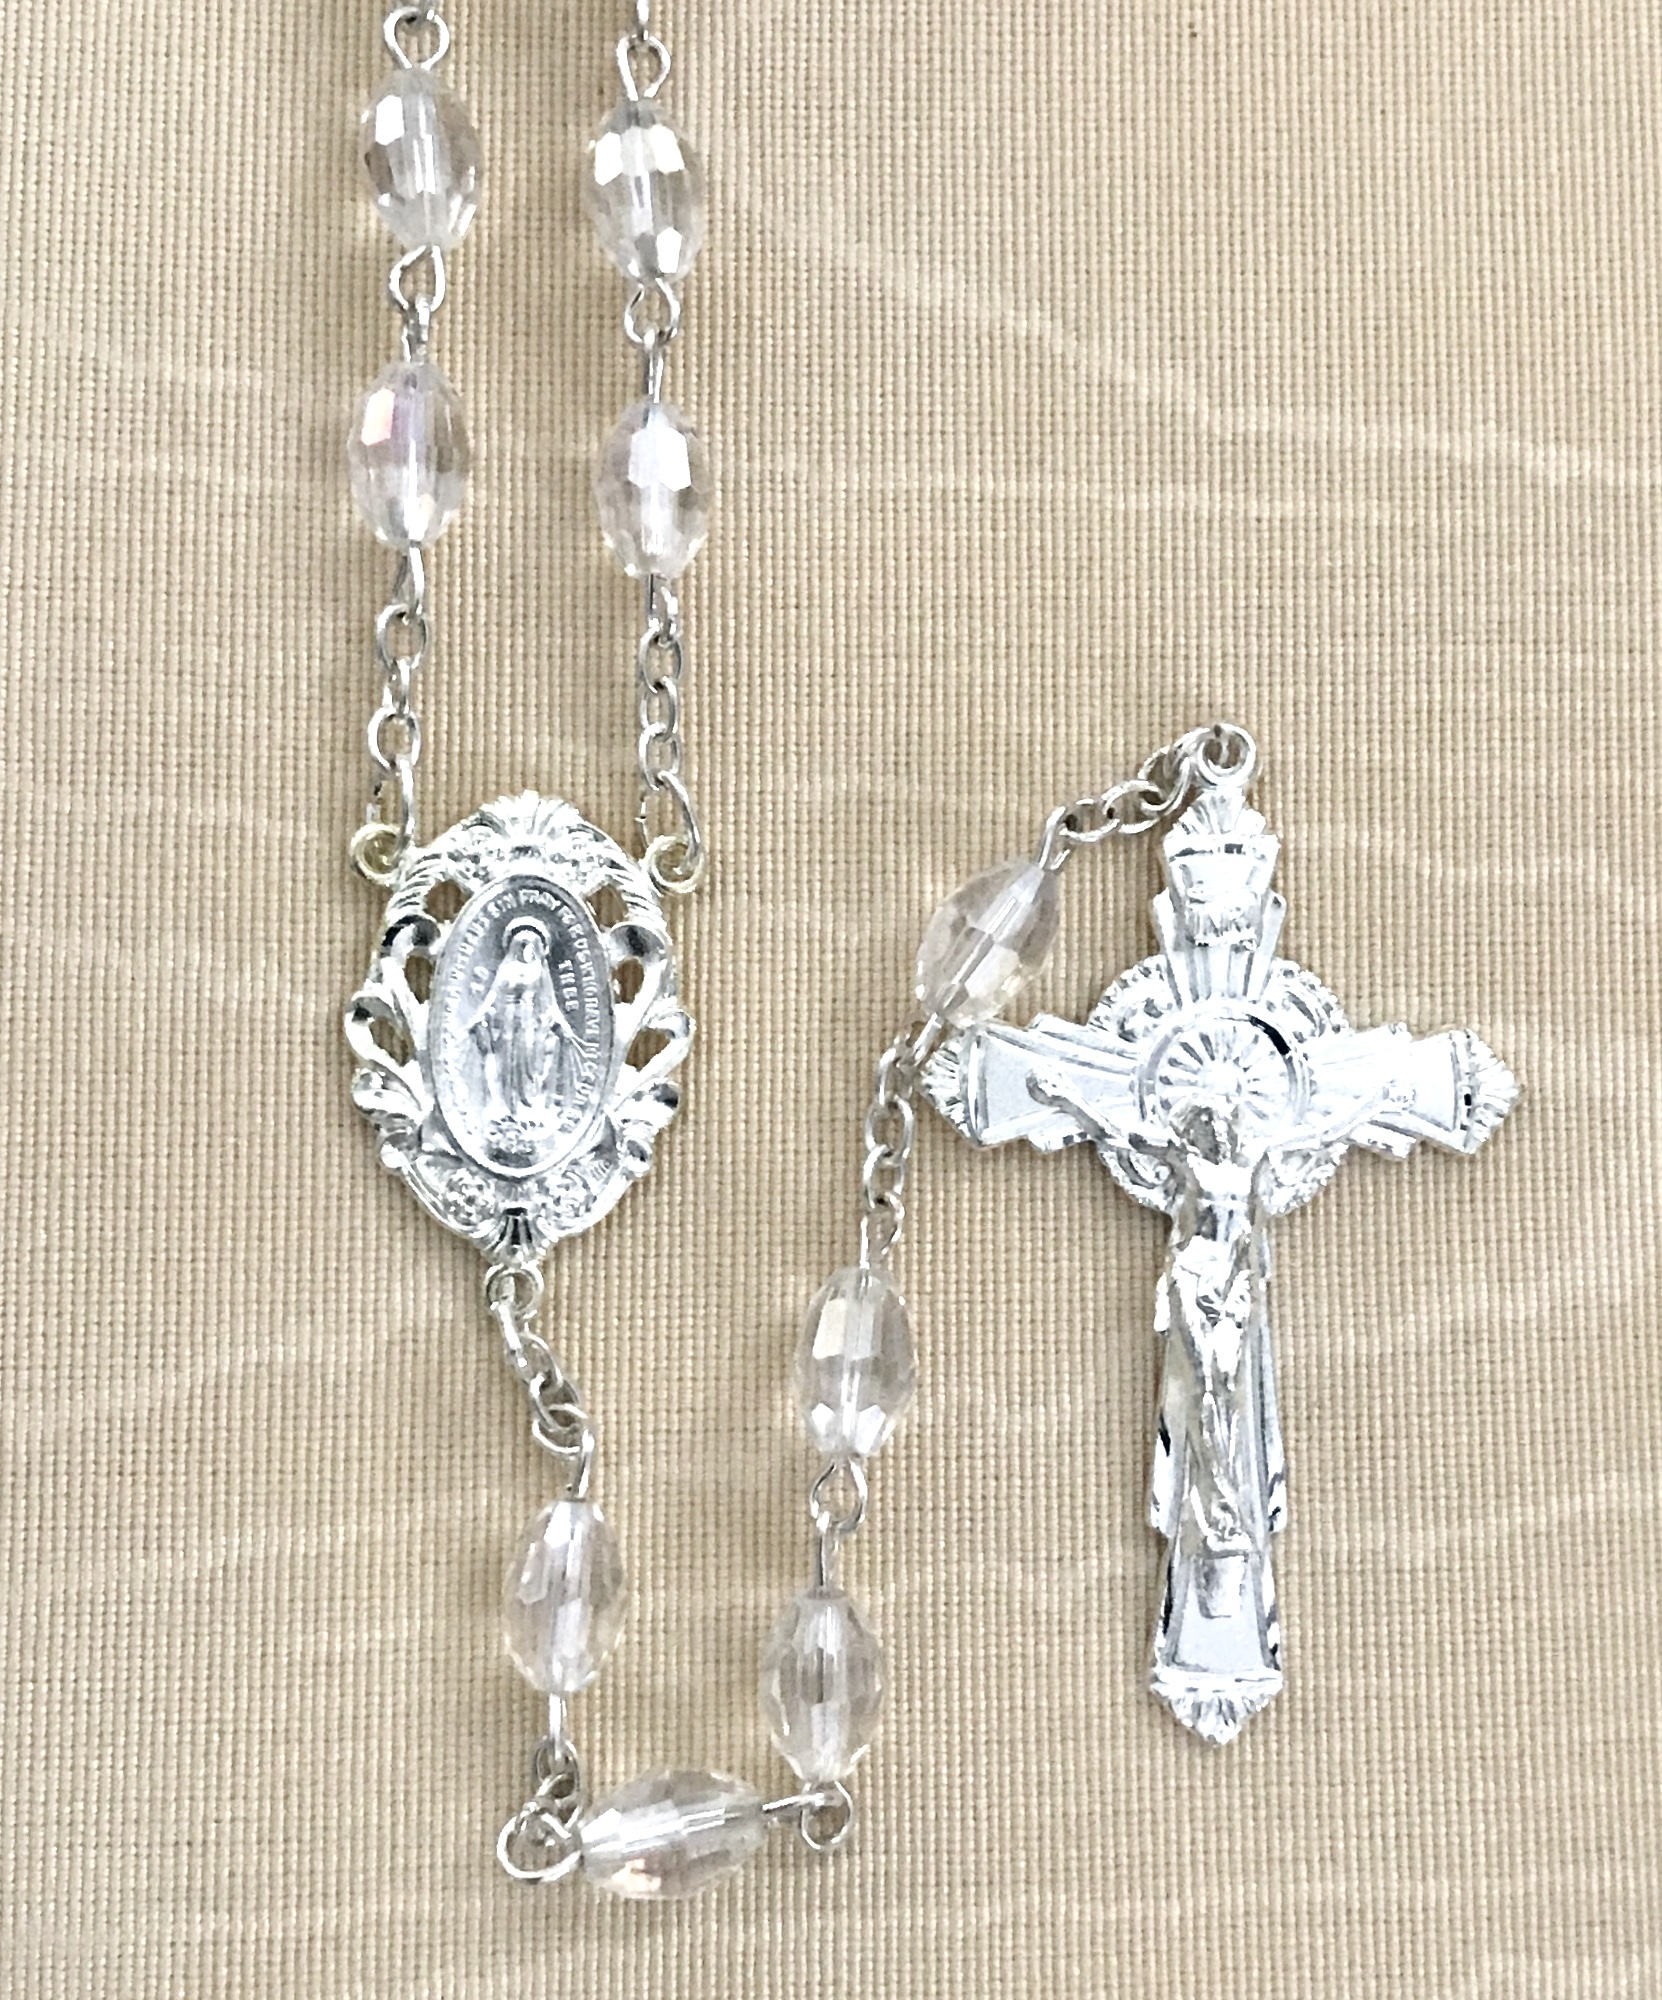 7x5mm TIN CUT CRYSTAL ROSARY WITH STERLING SILVER PLATED CRUCIFIX AND CENTER GIFT BOXED